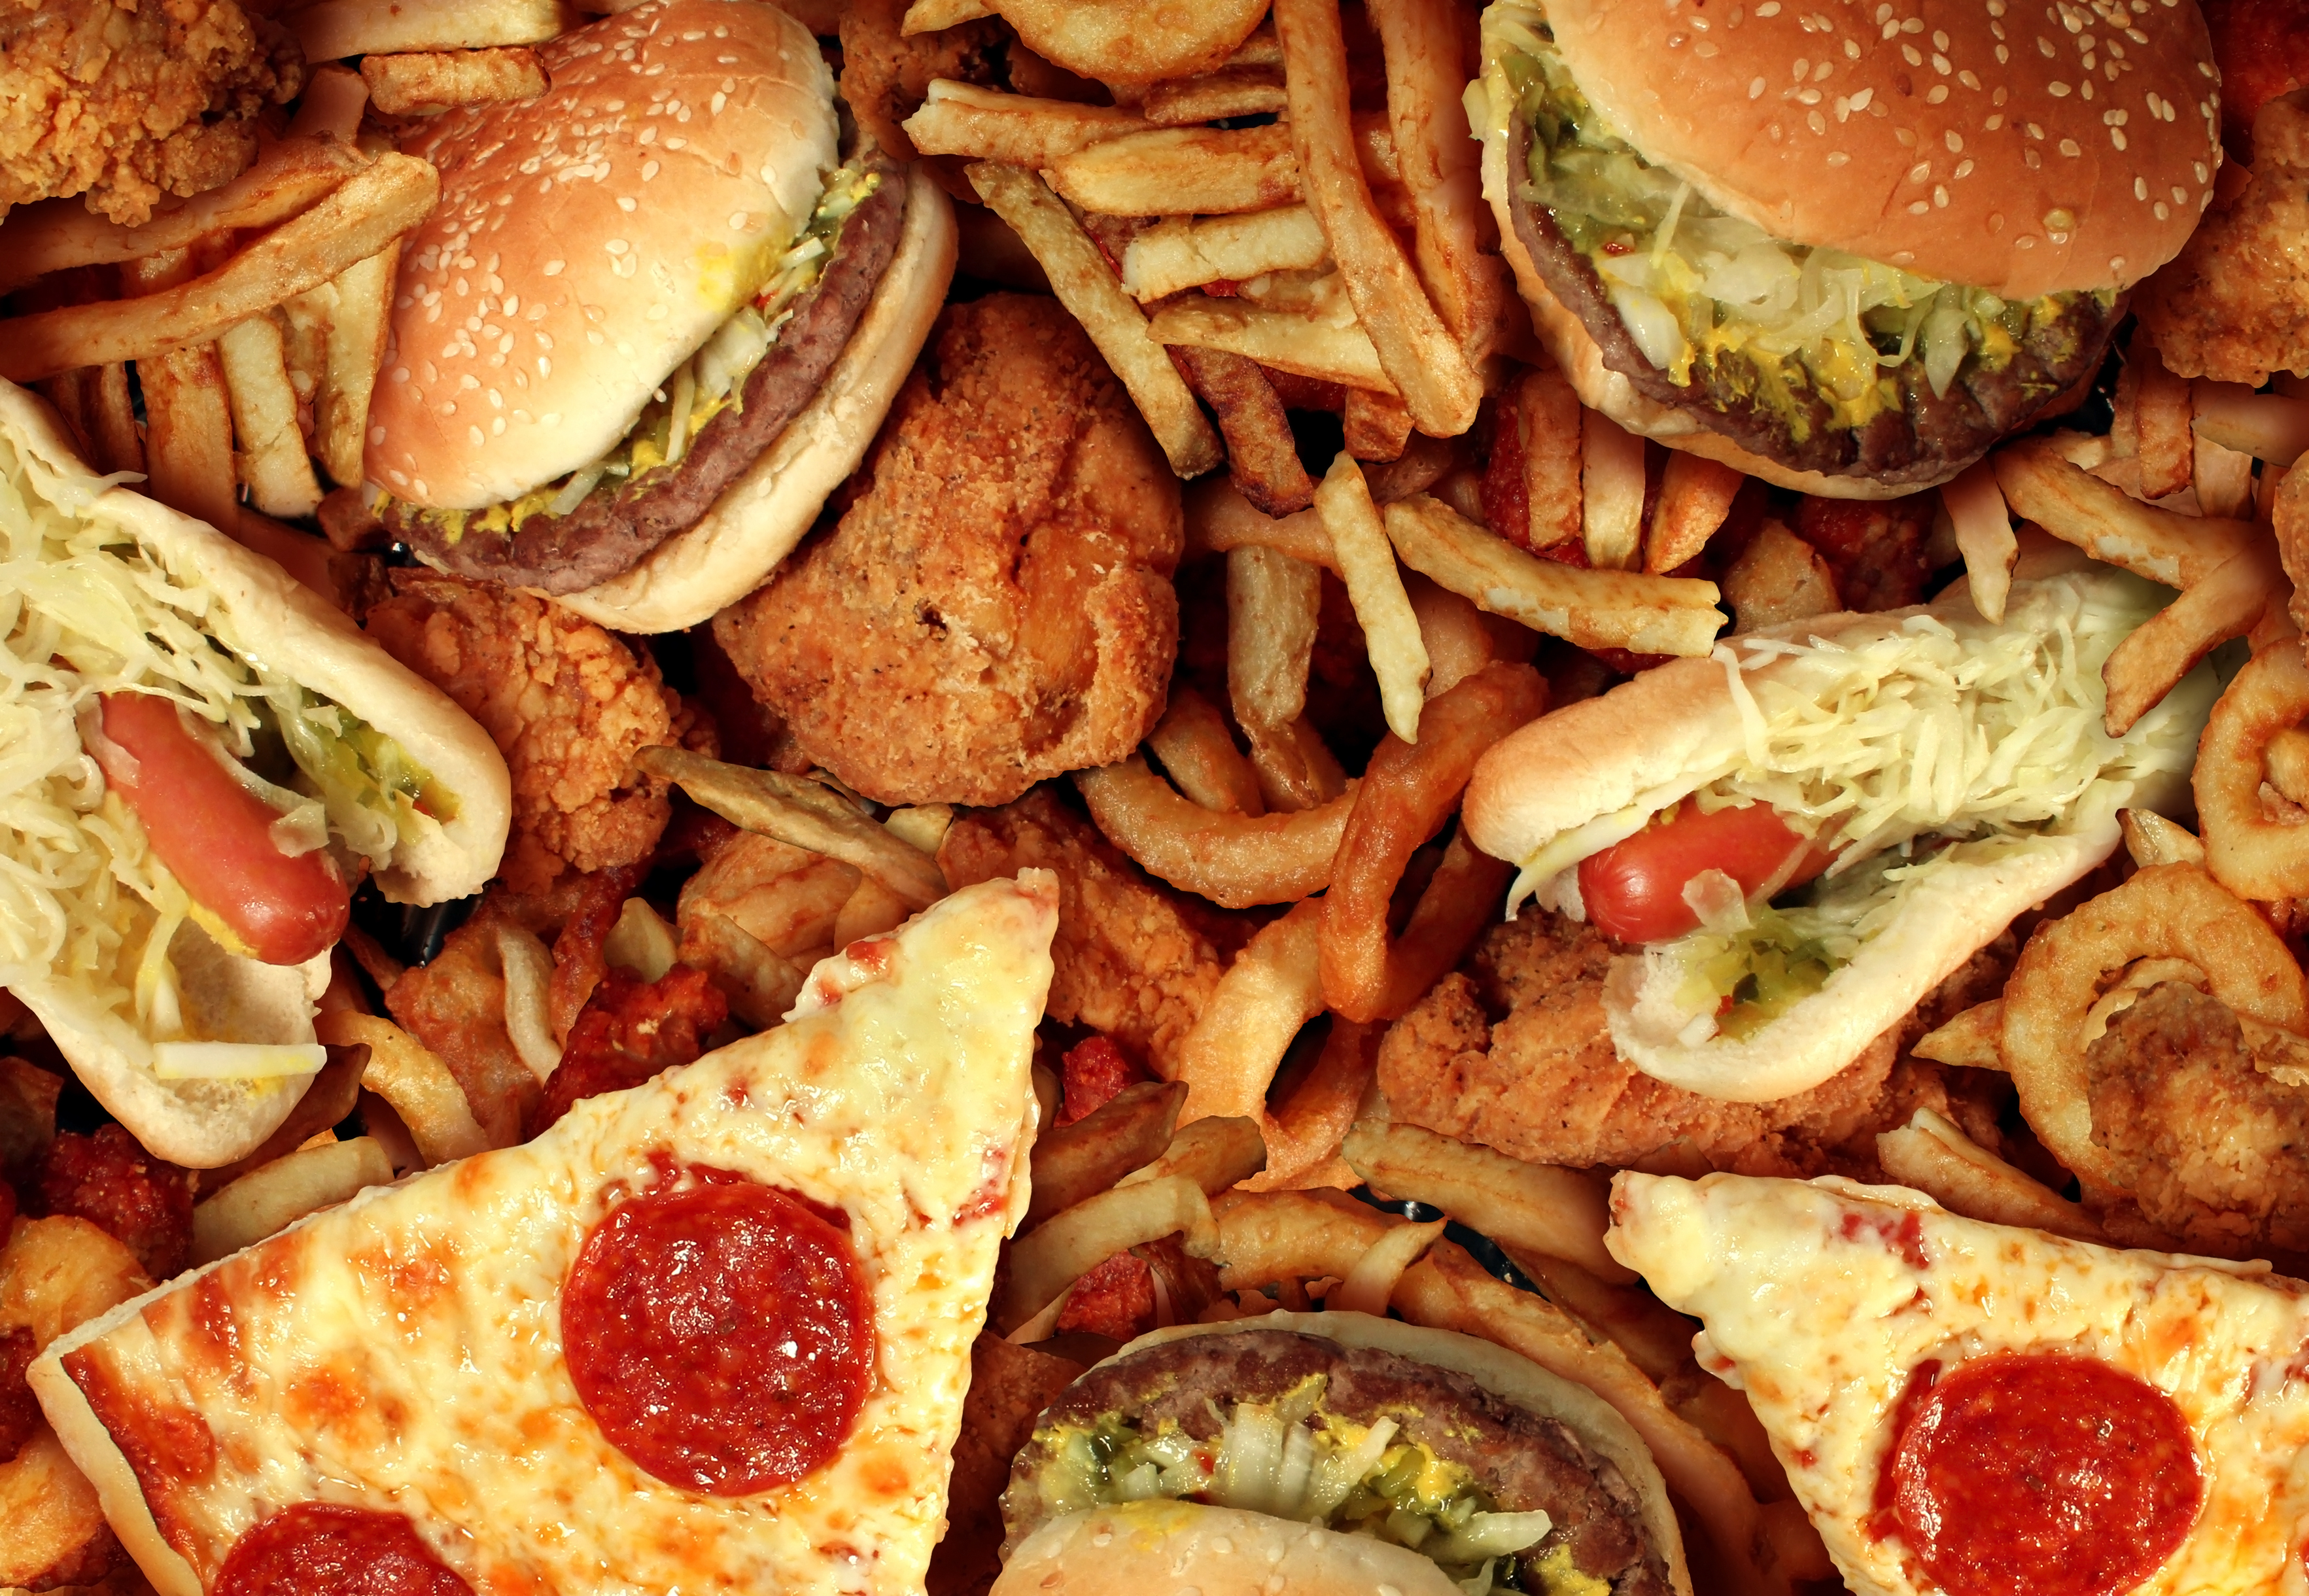 trend of fast food francise in Also, appetizing fast food with desired flavors may positively lift up the fast food market in the forecast periodhowever, rising health awareness among the consumers may impede the growth of the fast food industry in the foreseeable future.